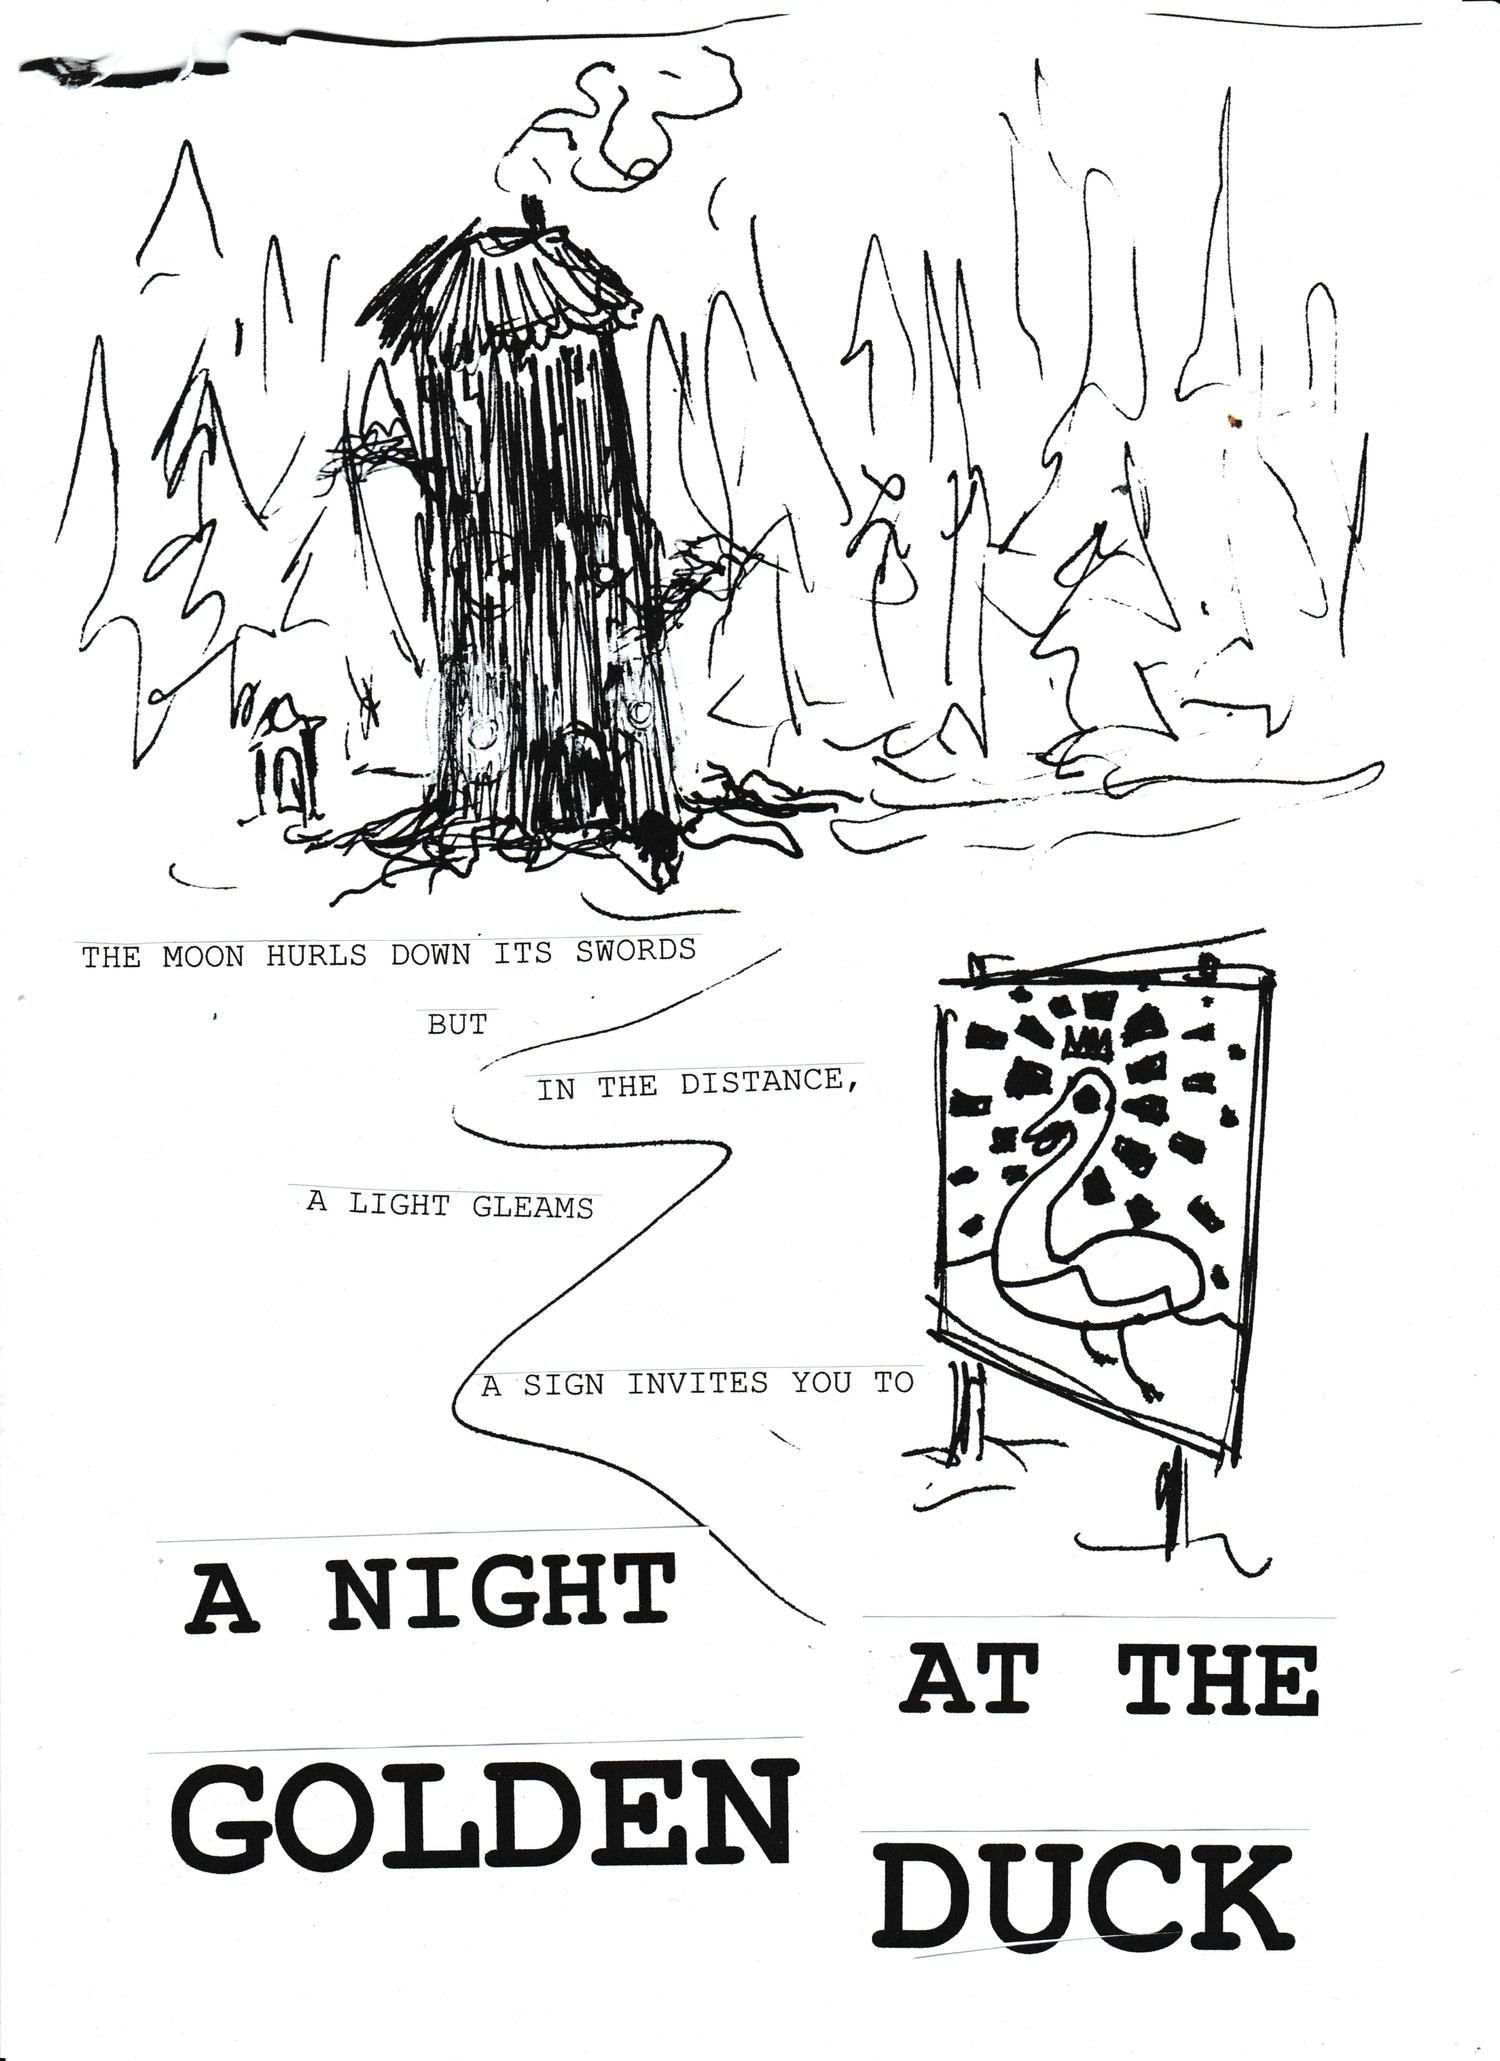 Image of A Night at the Golden Duck